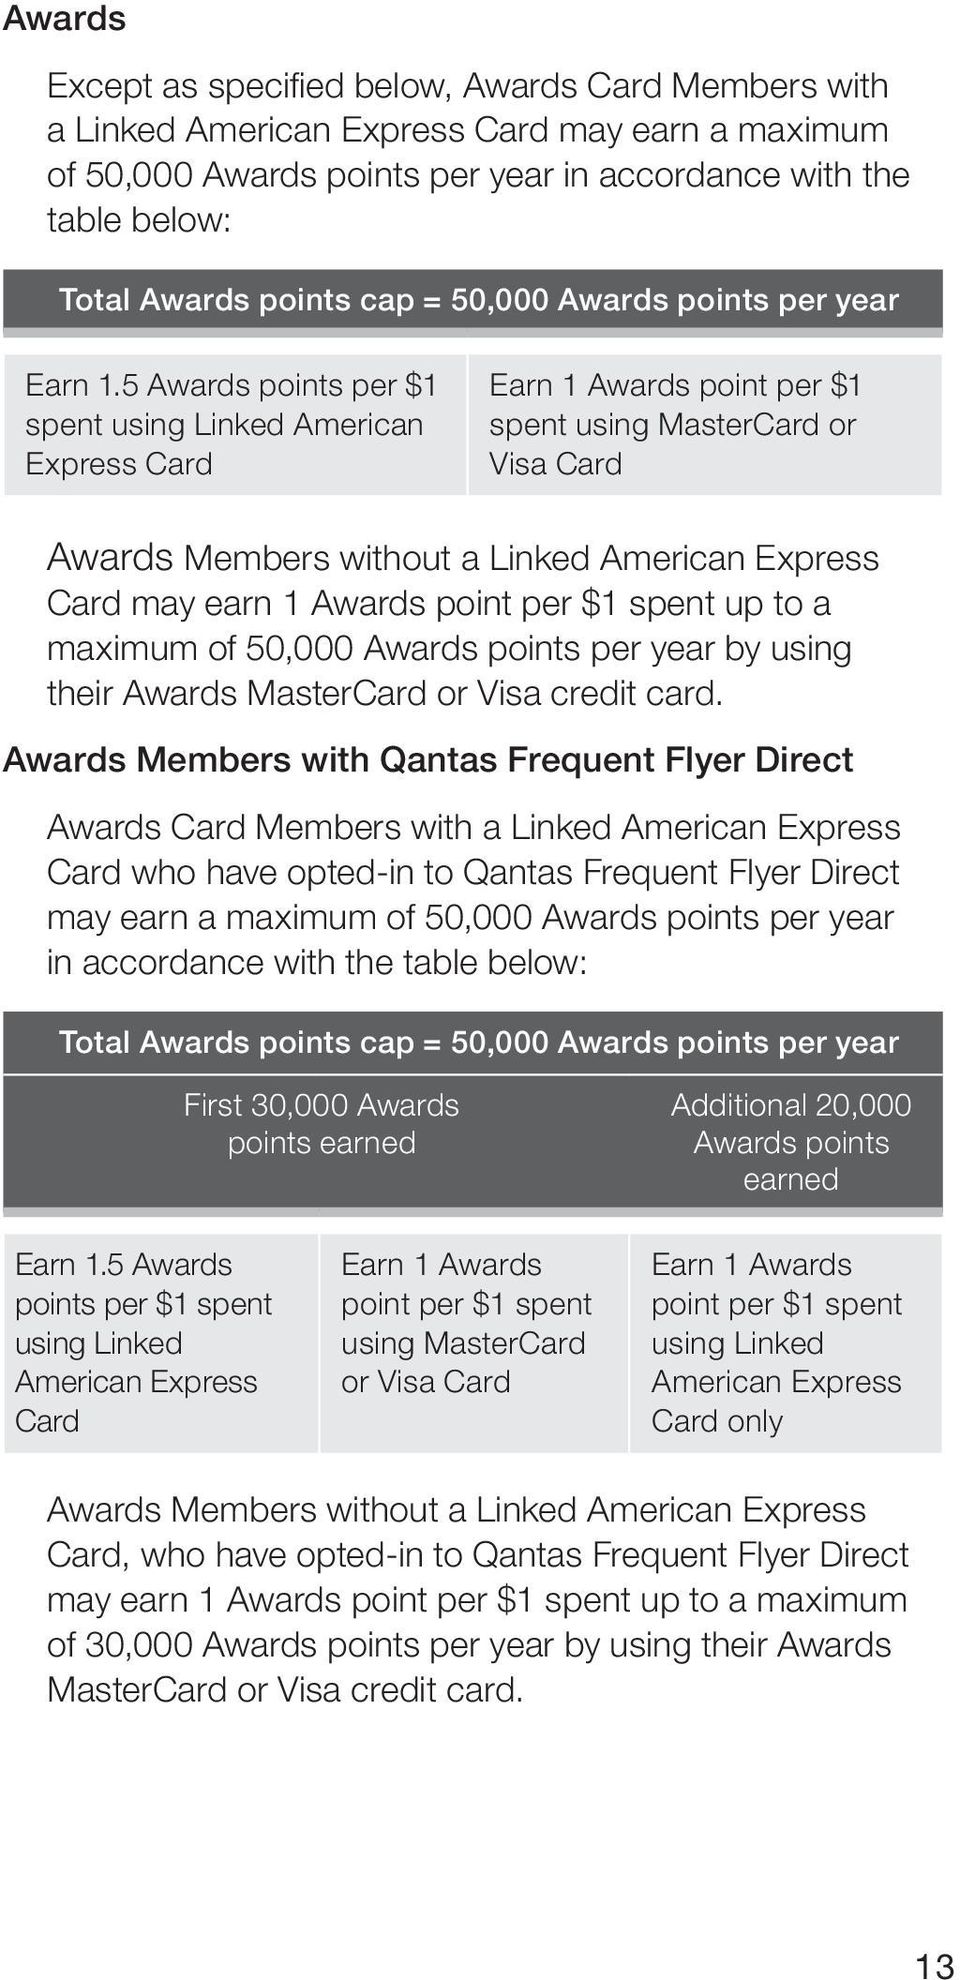 5 Awards points per $1 spent using Linked American Express Card Earn 1 Awards point per $1 spent using MasterCard or Visa Card Awards Members without a Linked American Express Card may earn 1 Awards